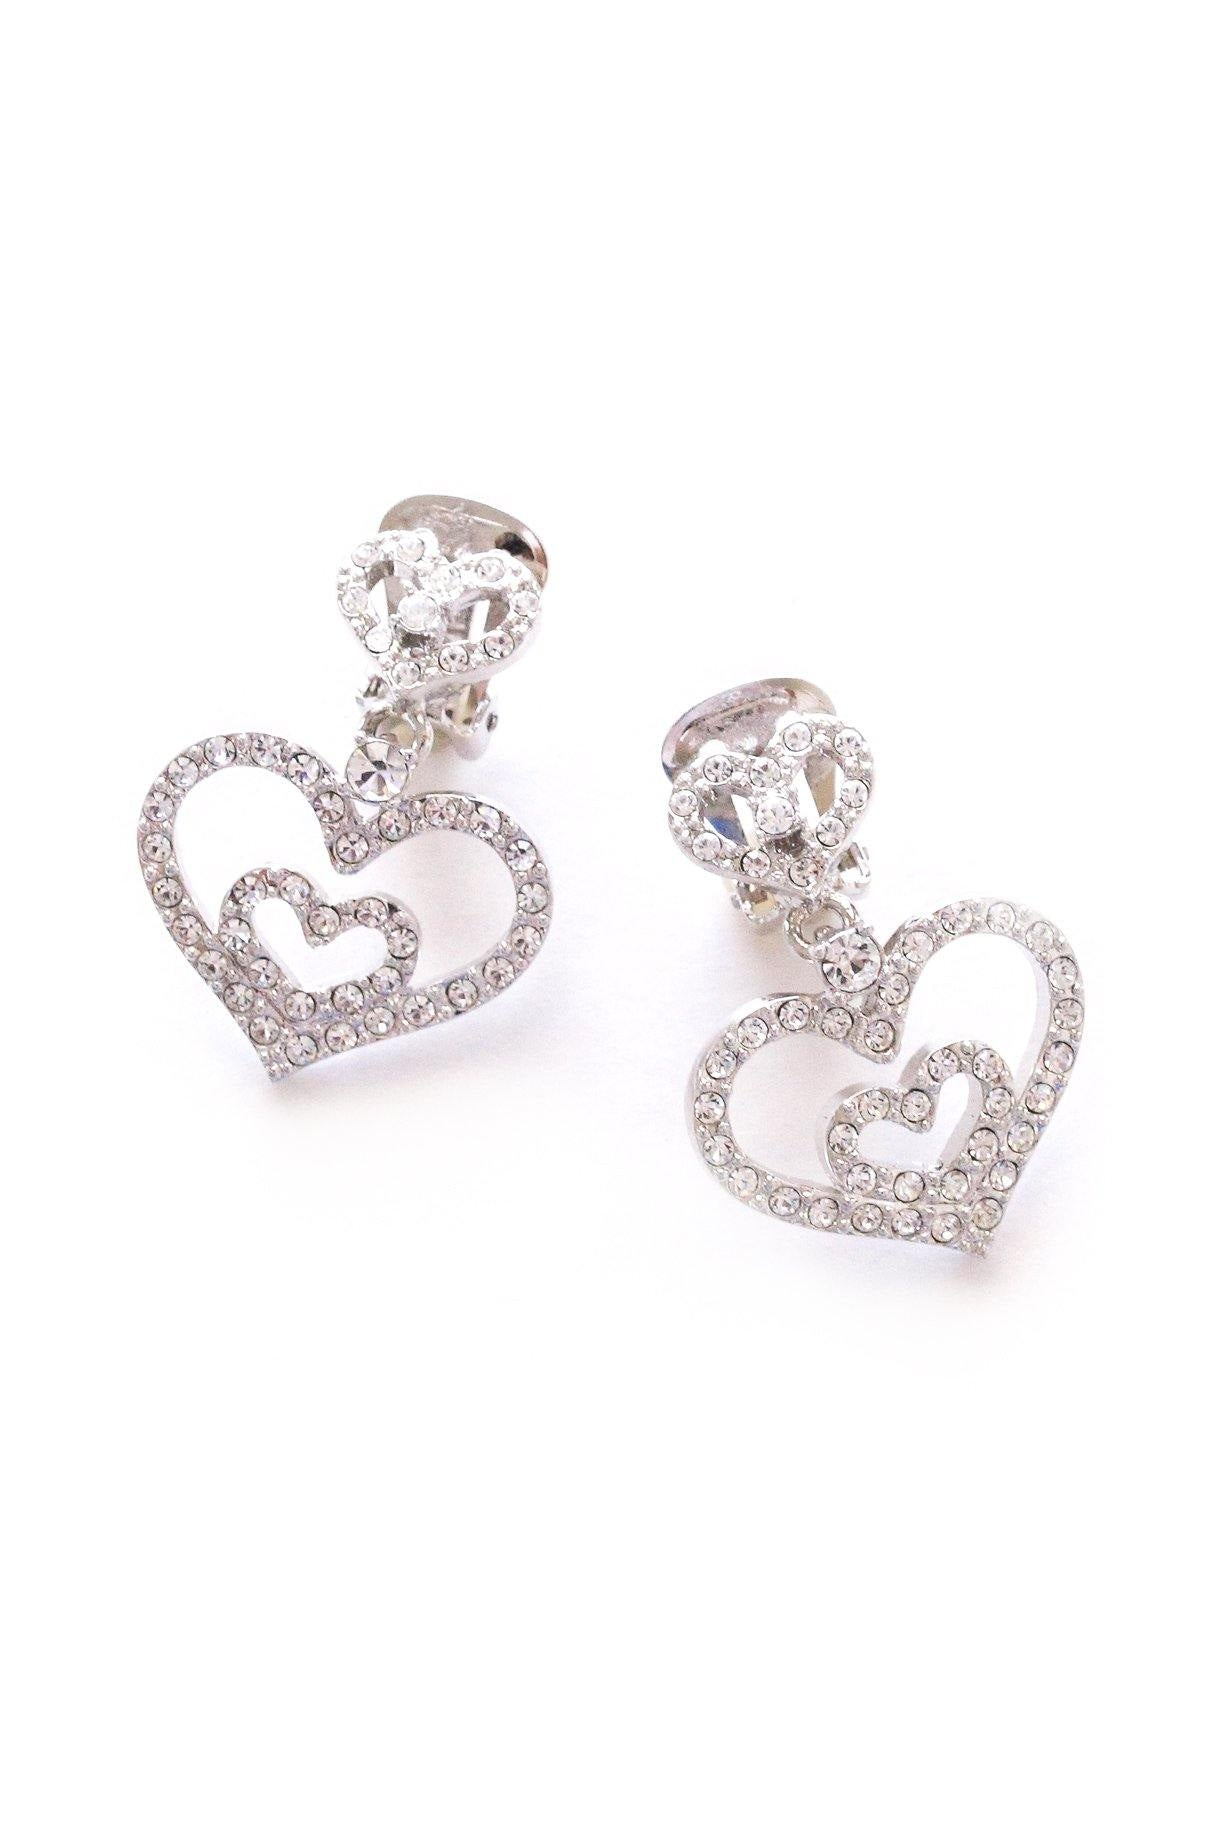 Rhinestone Heart Statement Clip-on Earrings